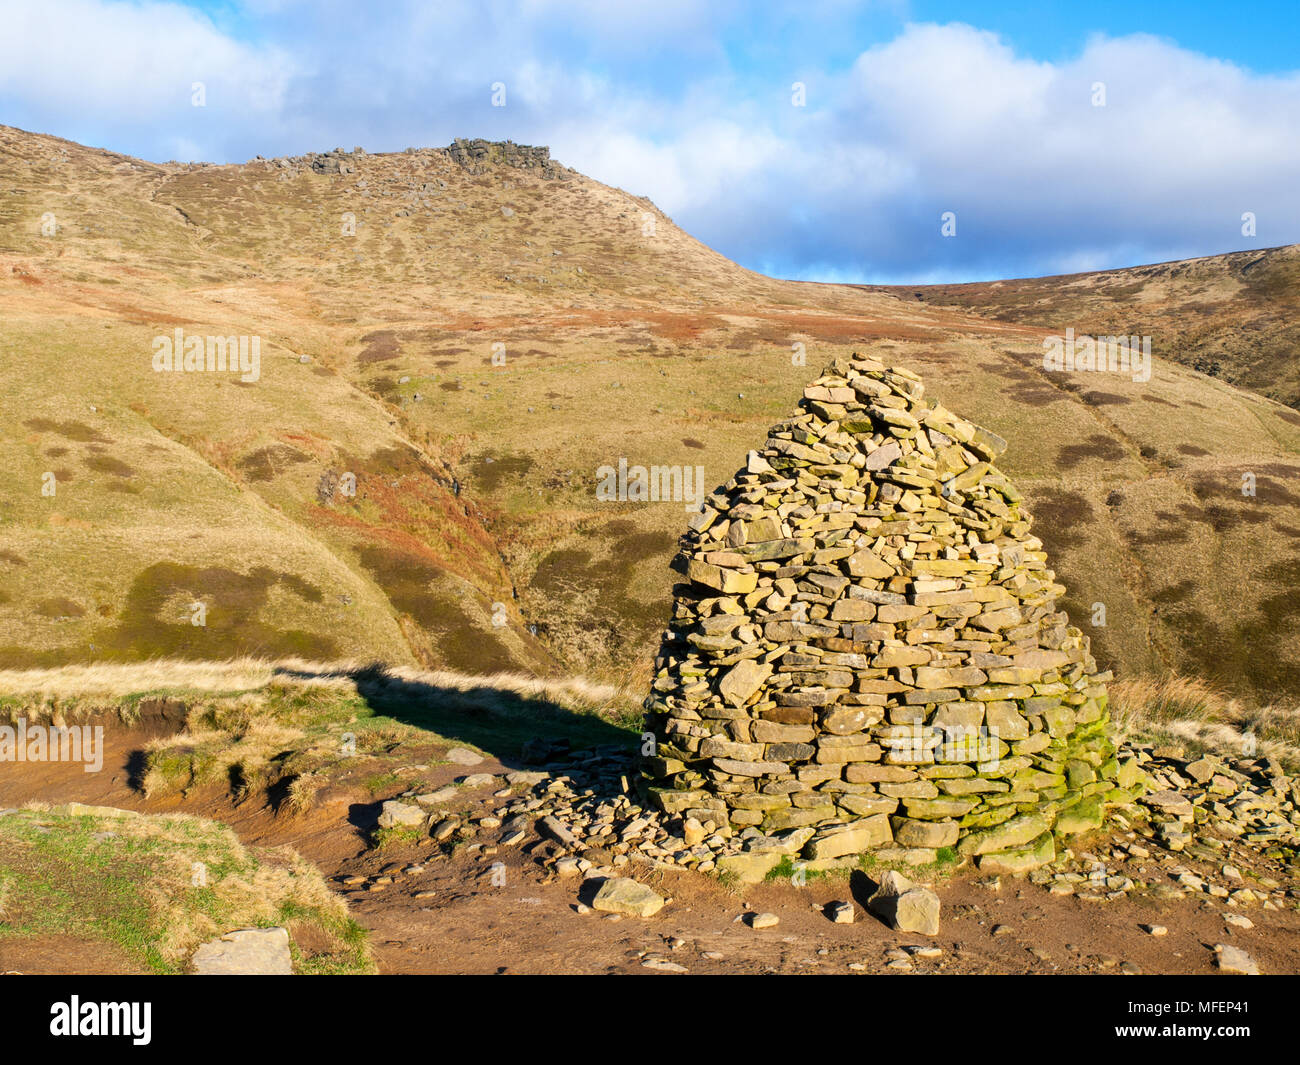 Cairn on the Jacob's Ladder path, Kinder Scout, Peak District National Park - Stock Image